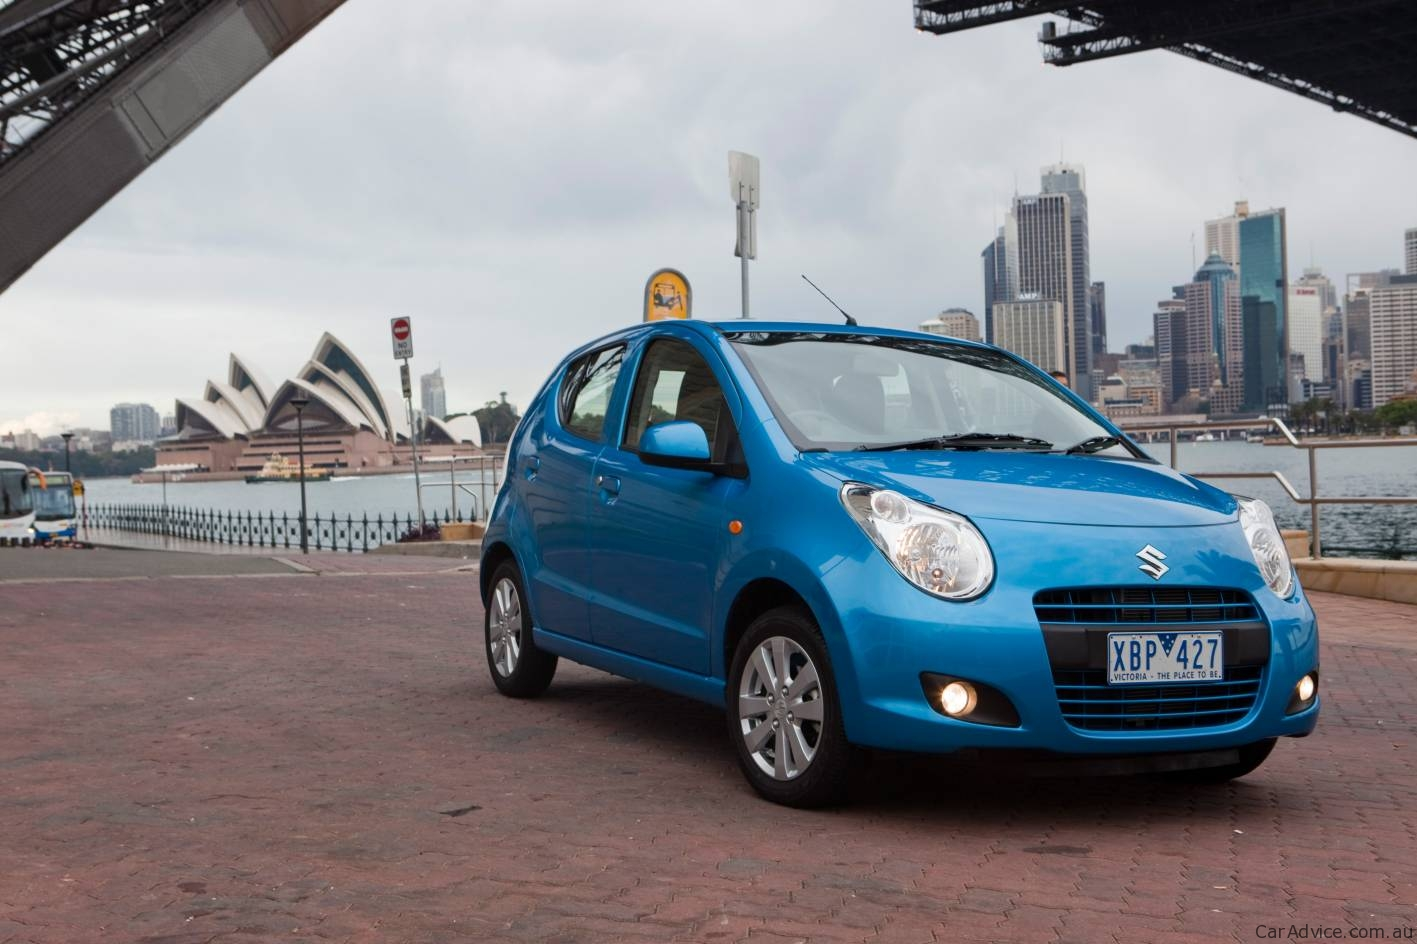 2010 suzuki alto more frugal thanks to low rolling resistance tyres photos 1 of 2. Black Bedroom Furniture Sets. Home Design Ideas